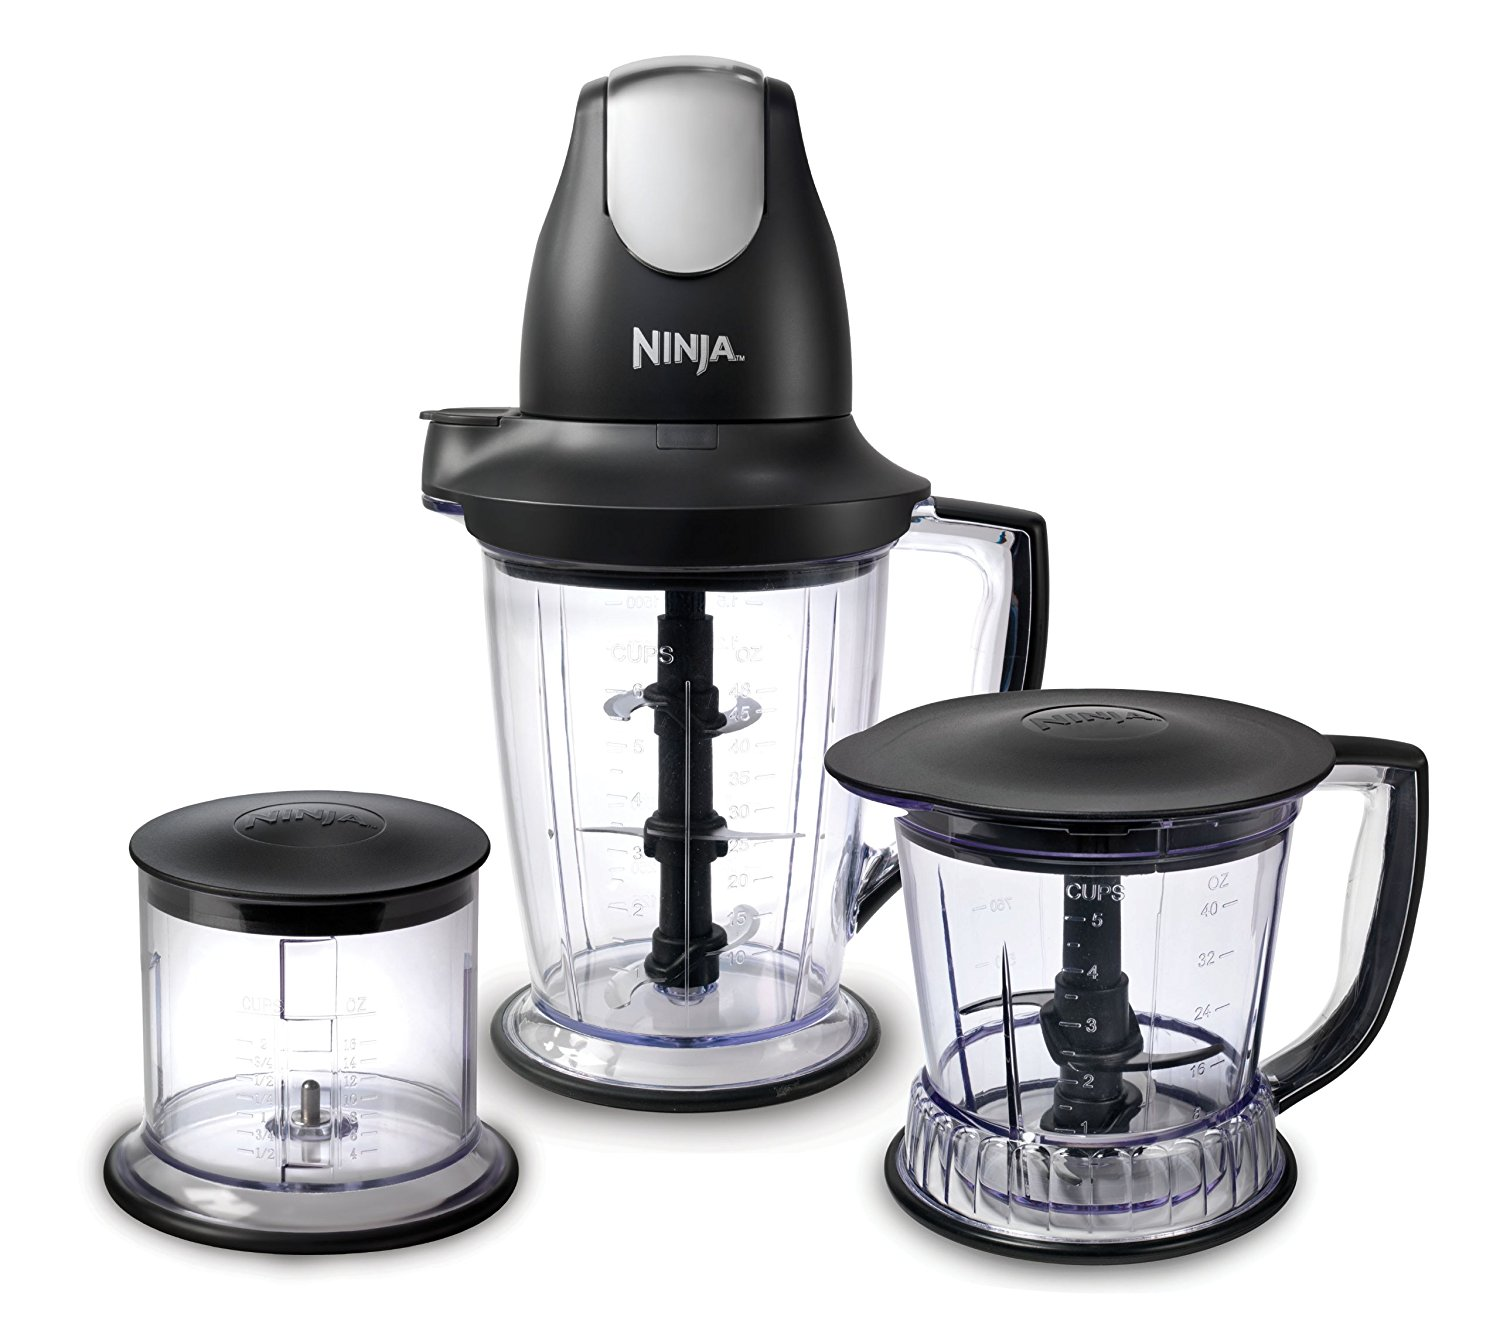 4. Ninja Master Prep Professional Food Processor